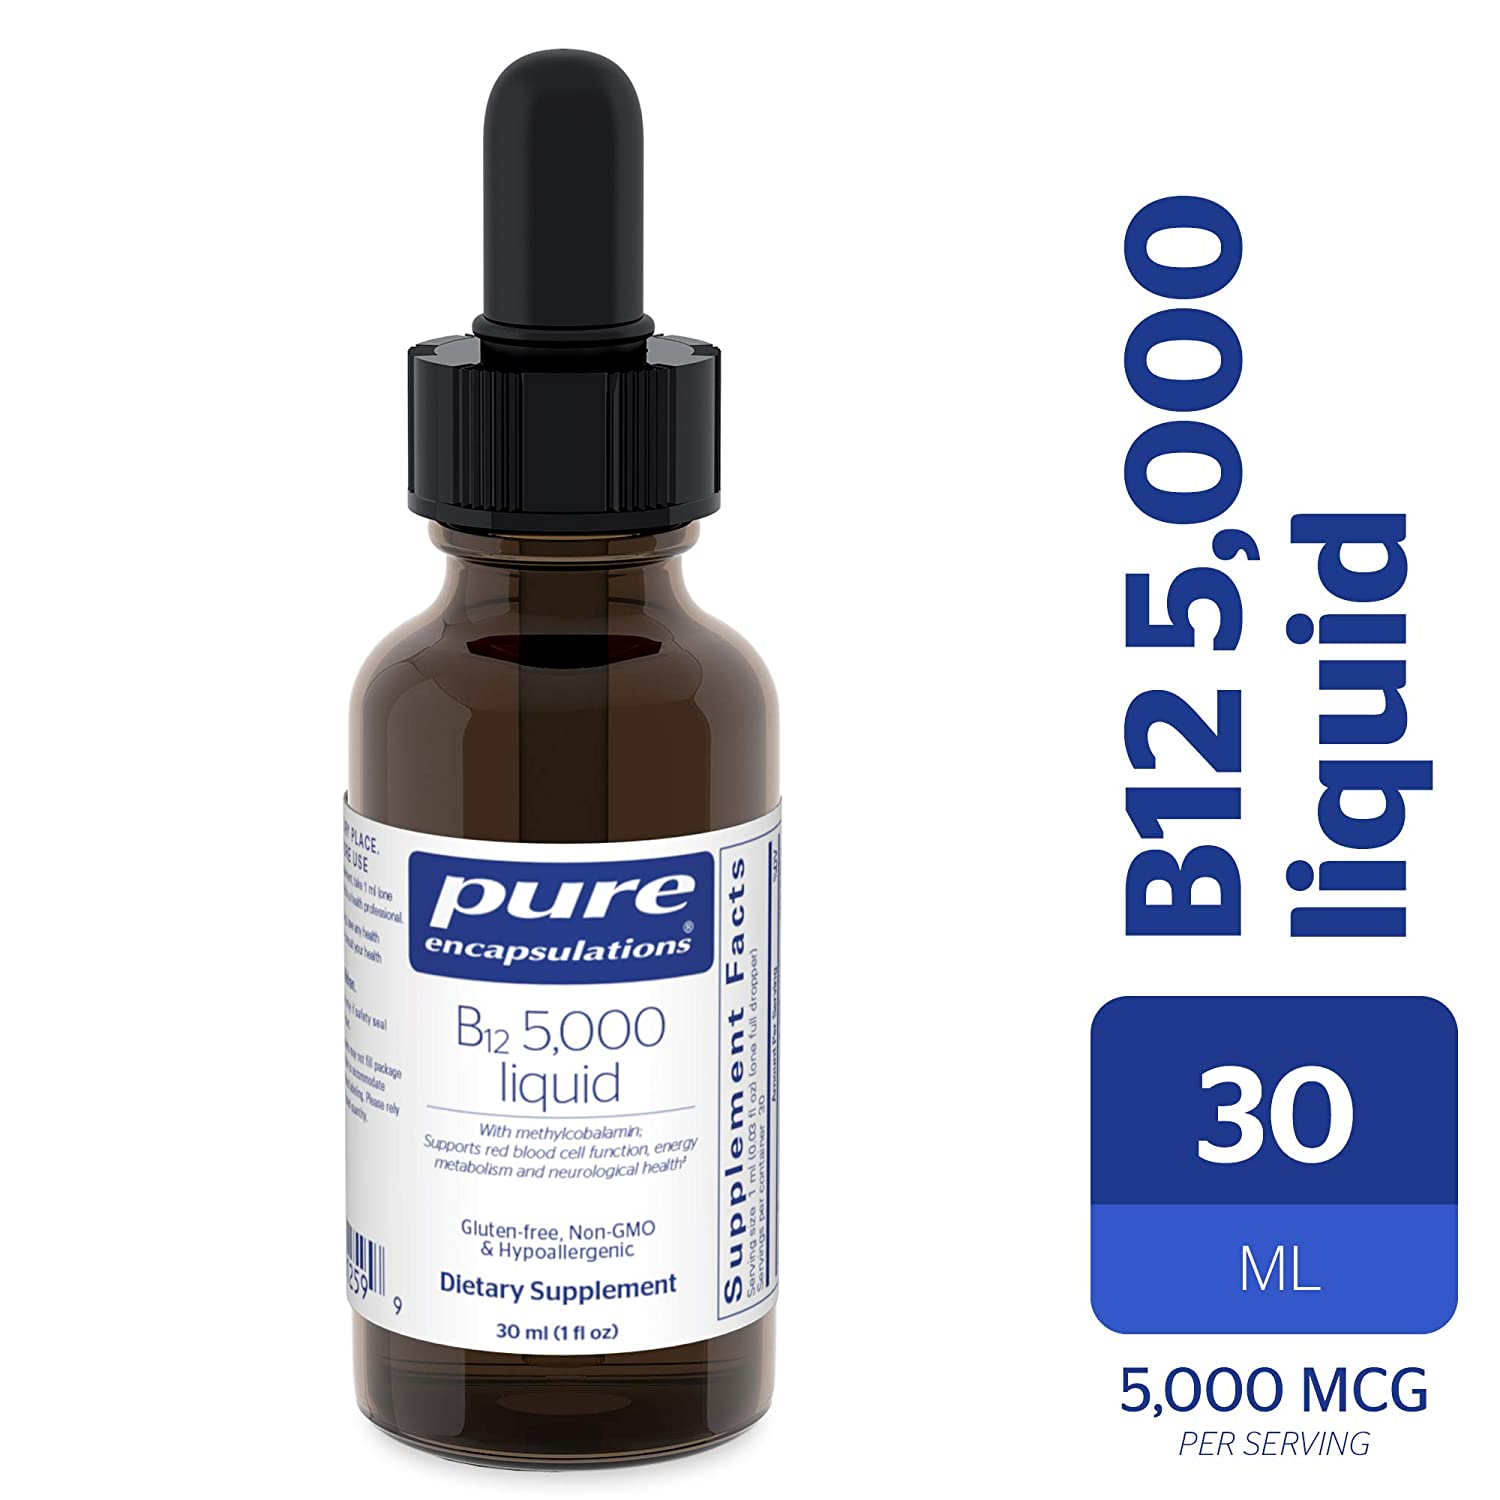 Pure Encapsulations – B12 5000 Liquid – 5,000 mcg Vitamin B12 Methylcobalamin Liquid for Nerve Health and Cognitive Function* – 30 ml